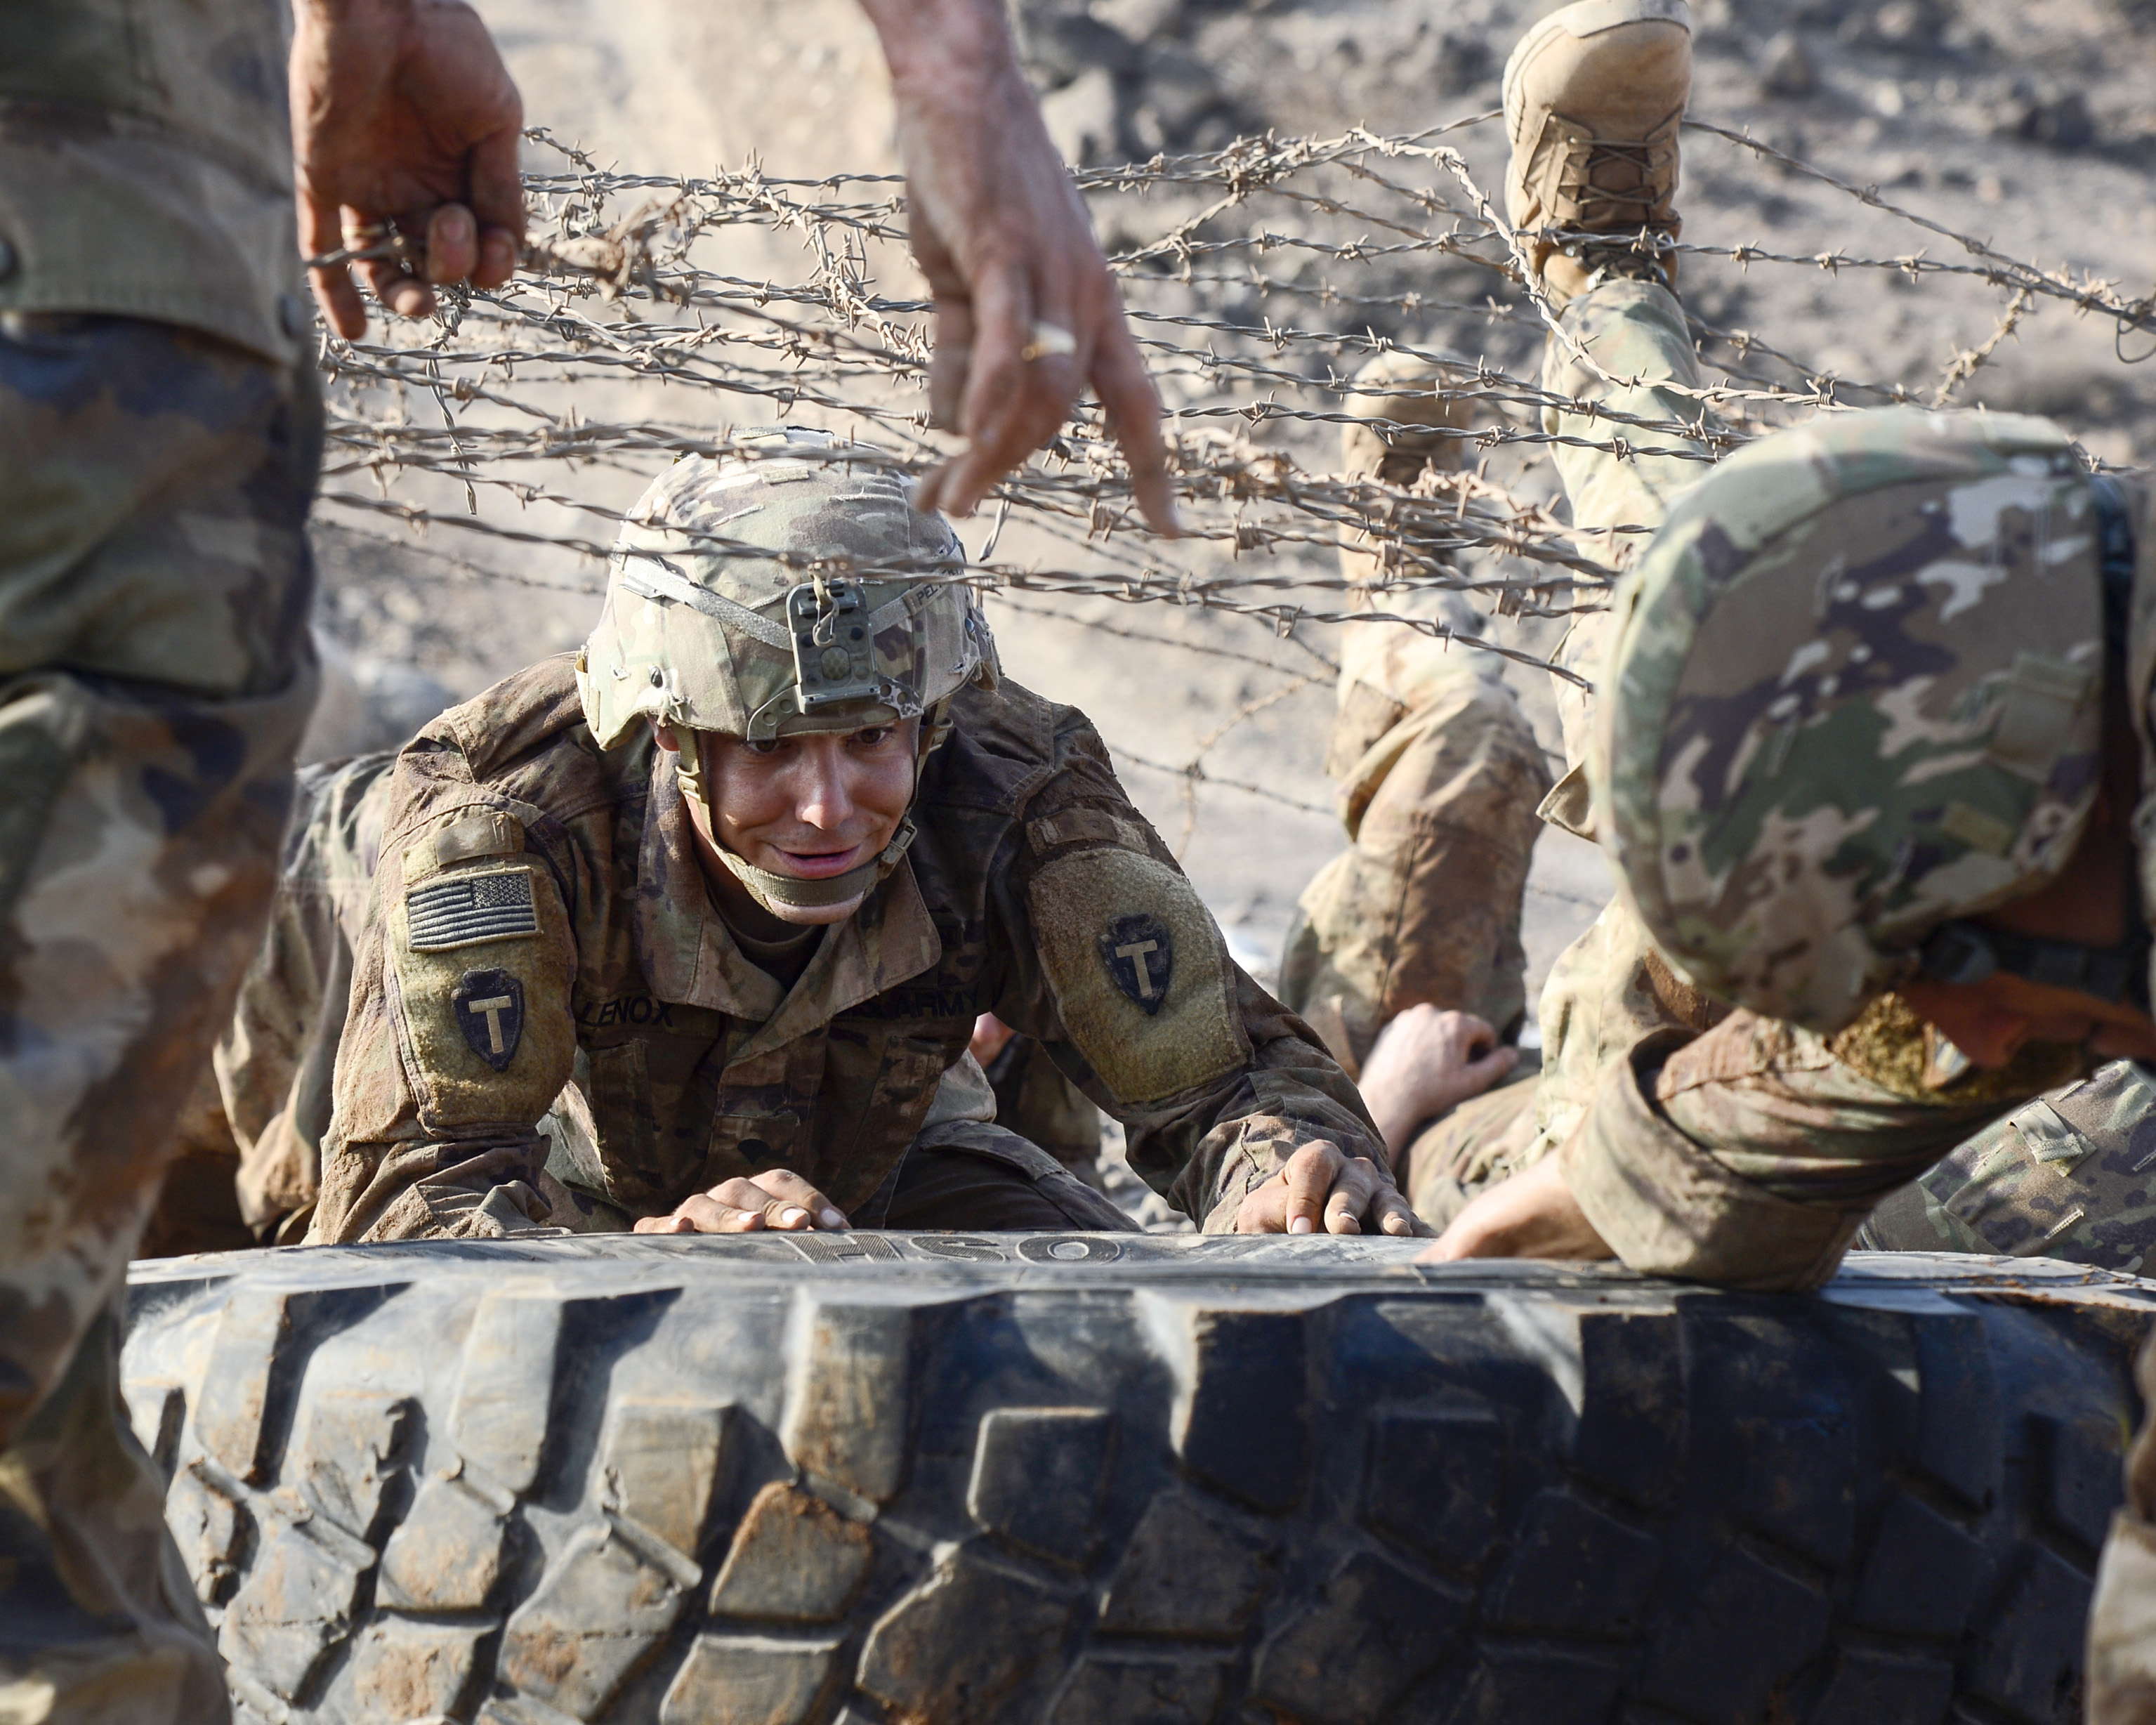 U.S. Army Spc. Aaron Lenox assigned to Alpha Company, 3rd Battalion, 144th Infantry Regiment, Texas Army National Guard assists his team in navigating an obstacle during the French Desert Commando Course at the Centre Dentrainment Au Combat Djibouti in Arta Plage, Djibouti, April 22, 2018.  The four-day phase is the first of two necessary to earn a coveted French Desert Commando Badge. (U.S. Navy Photo by Mass Communication Specialist 2nd Class Timothy M. Ahearn)